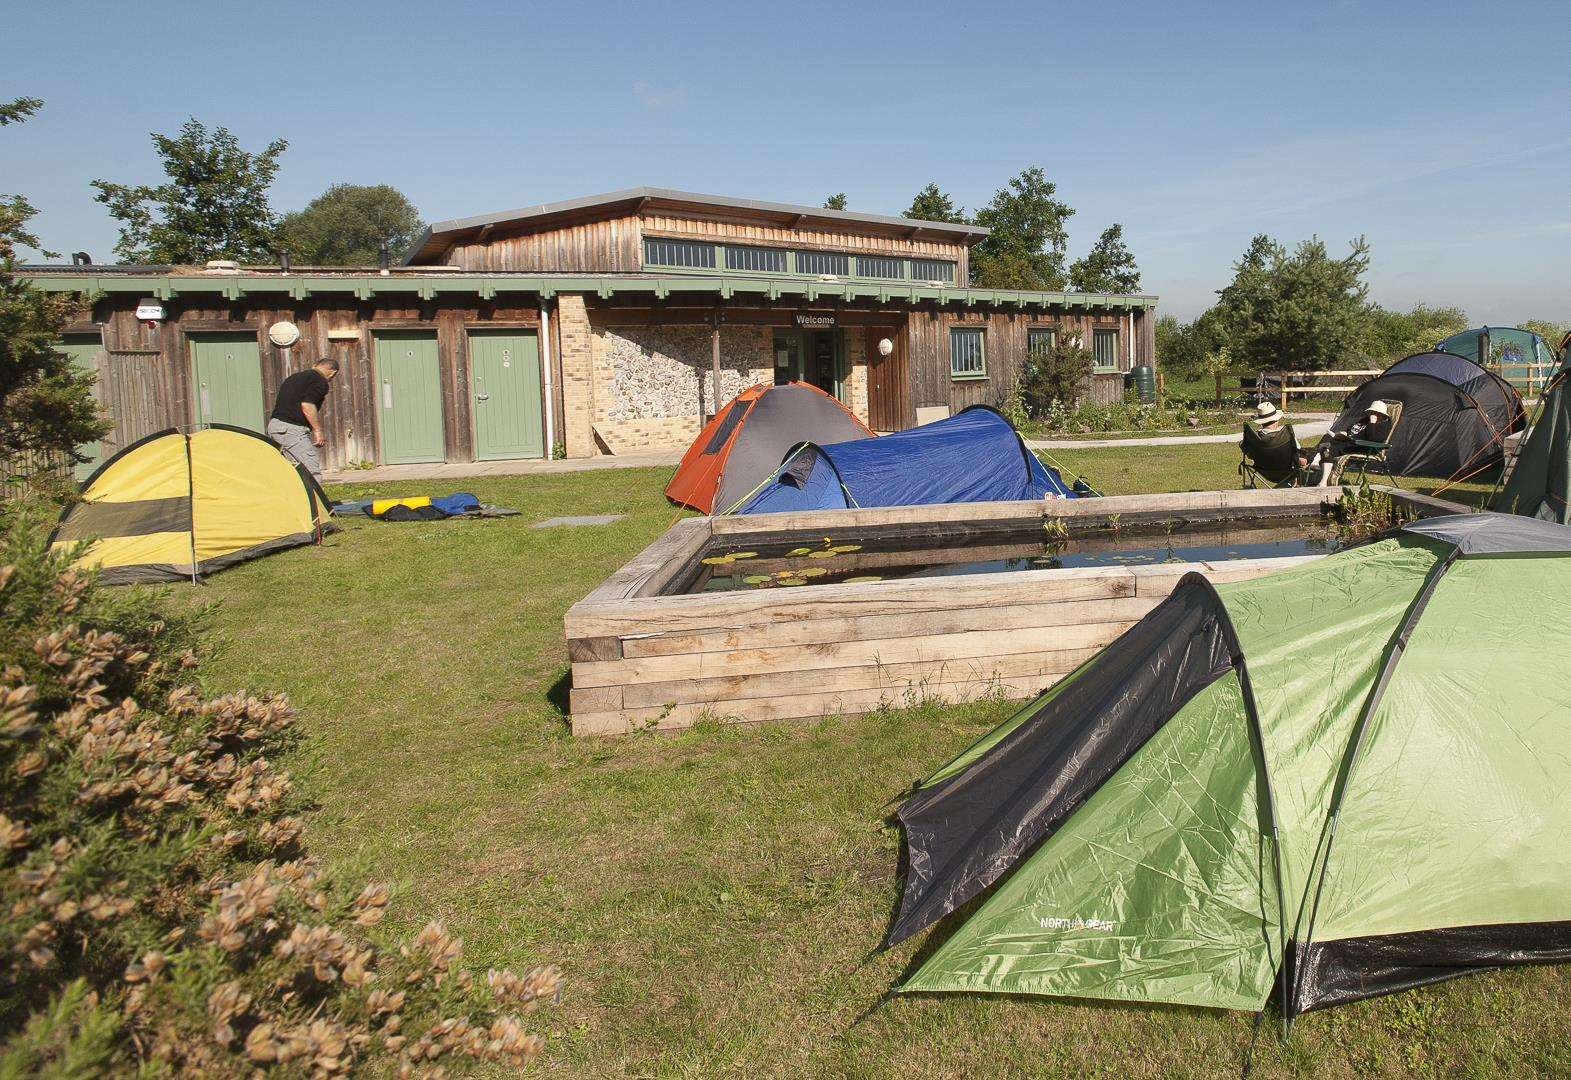 Culture: Camping out under the stars with the RSPB